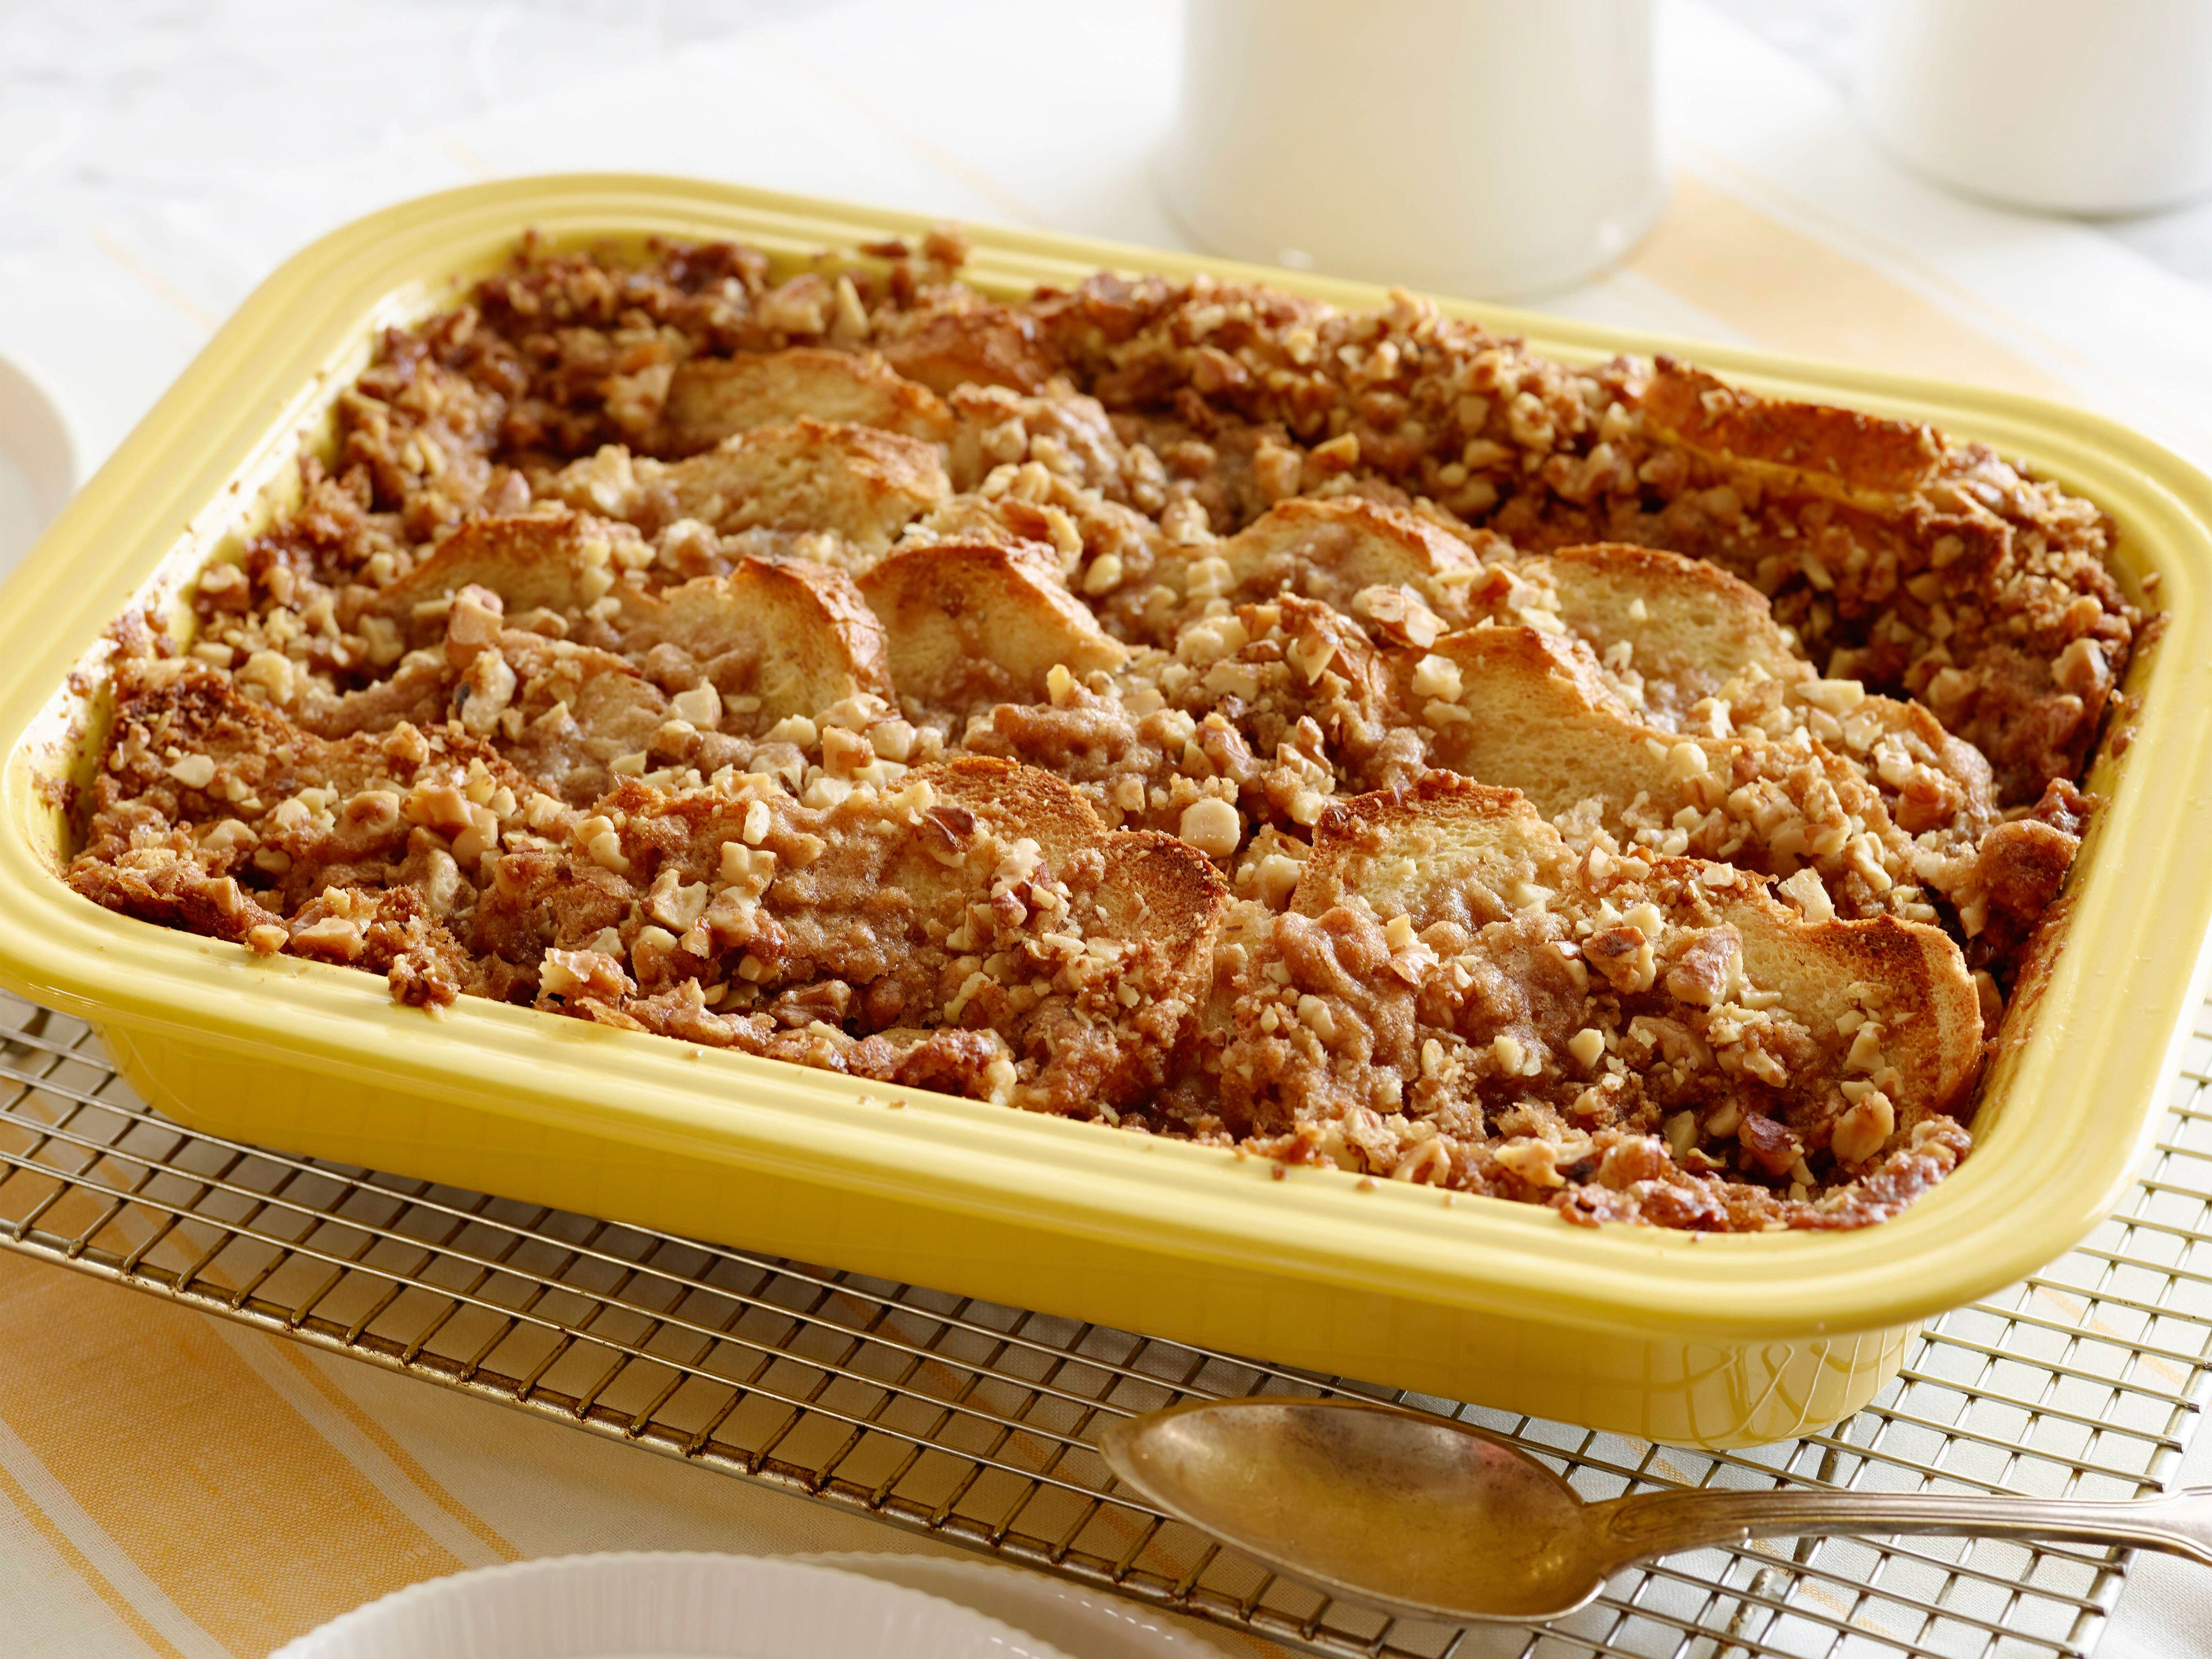 French Toast Casserole with Brown Sugar-Walnut Crumble